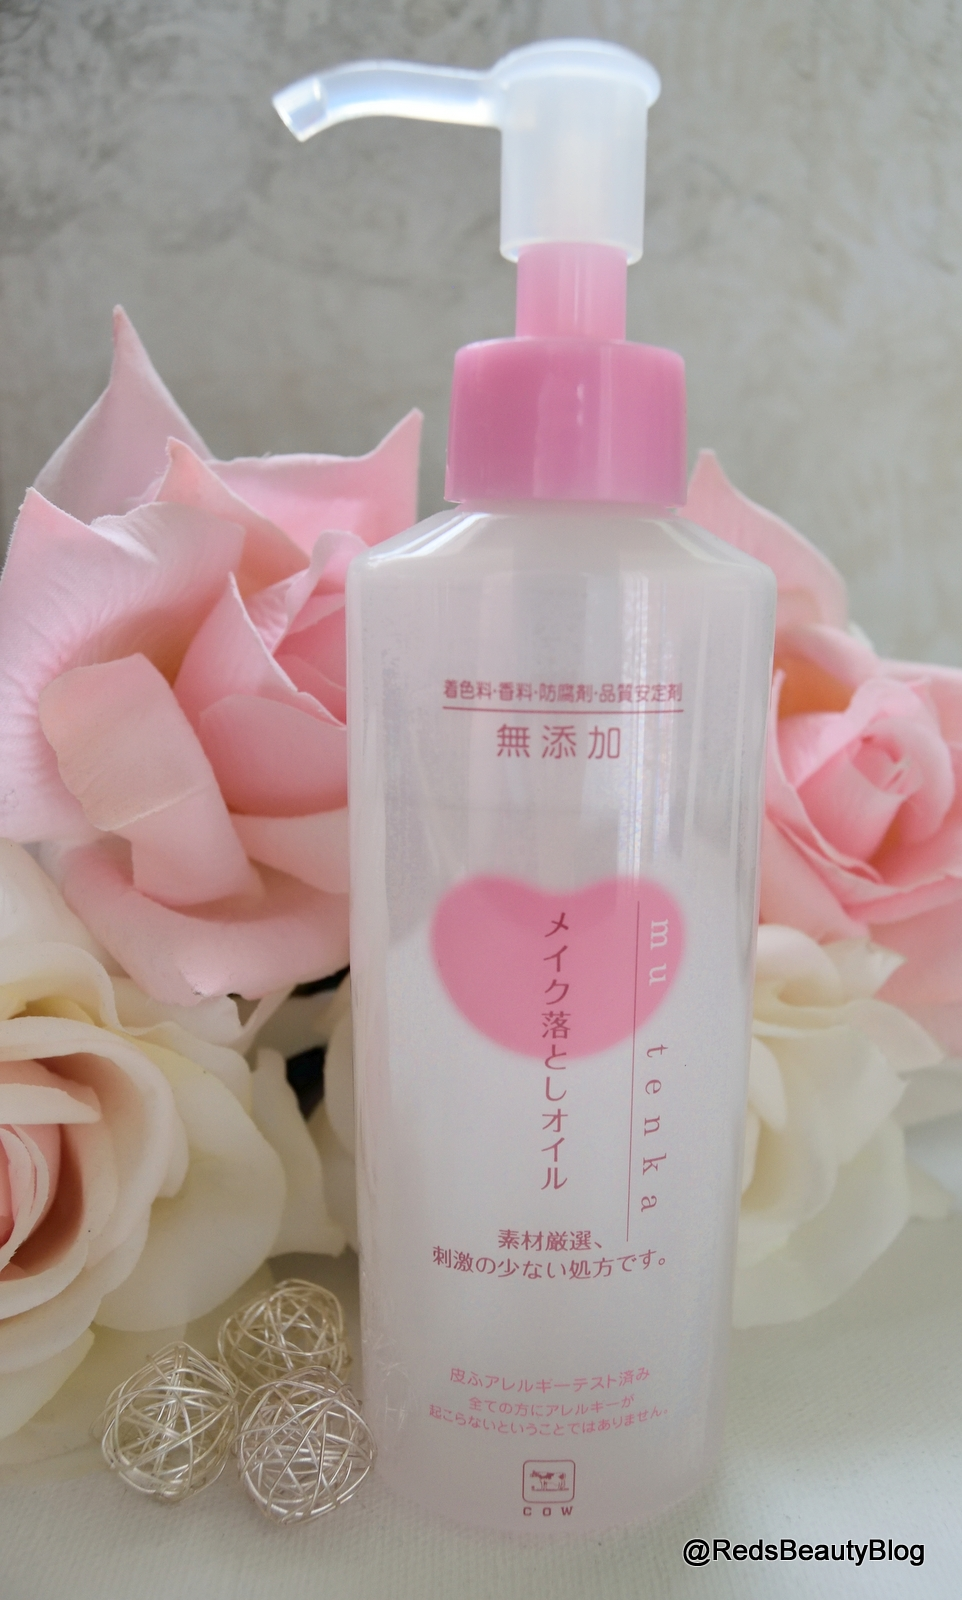 a picture of Mutenka Cow Brand Makeup Cleansing Oil